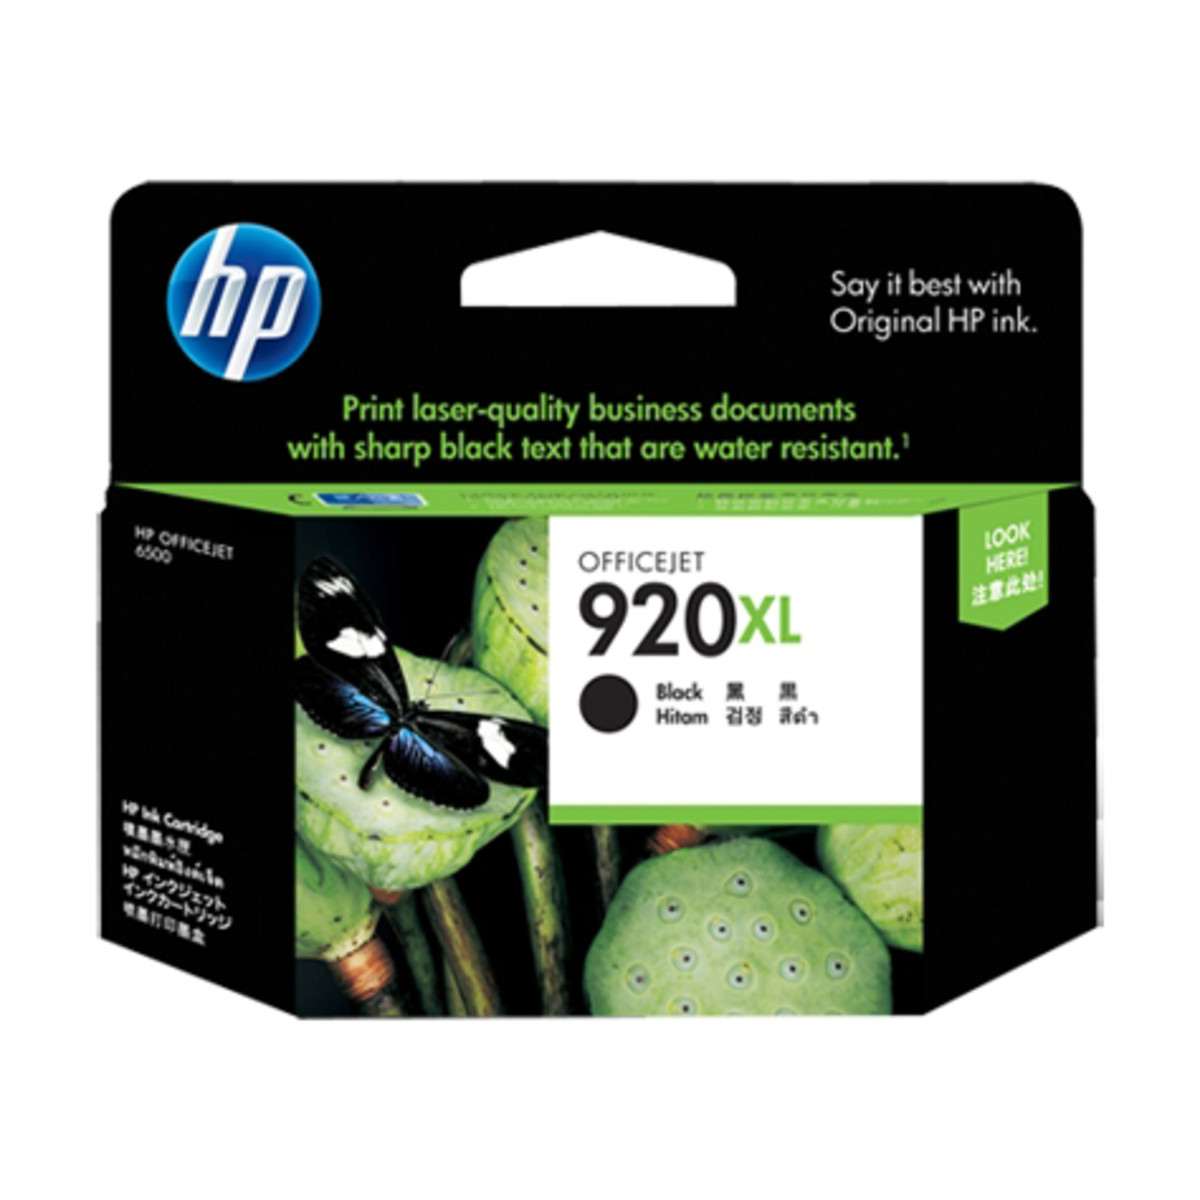 HP 920XL (CD975AA) Black Ink Cartridge - High Yield